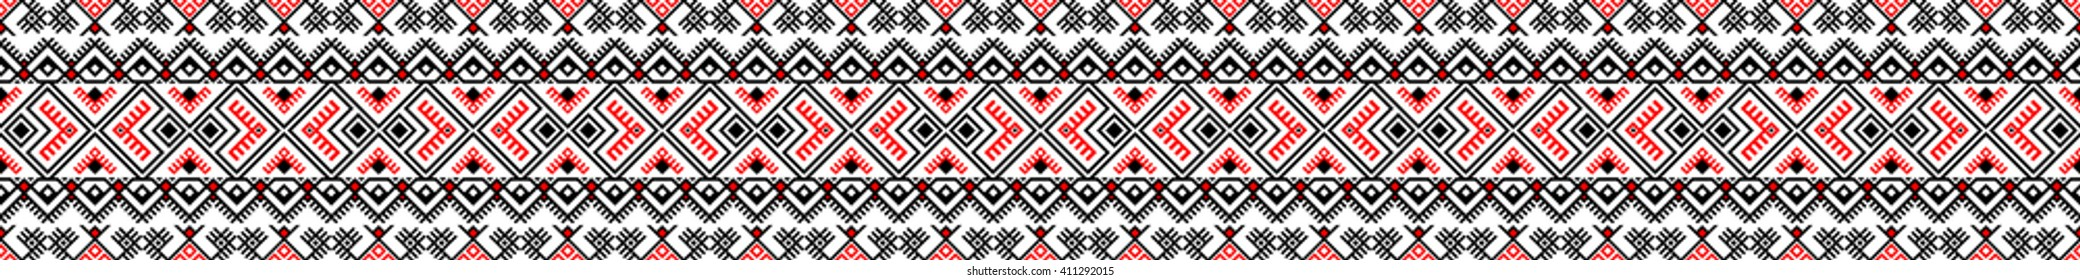 Vector. Ethnic endless stylish geometric seamless pattern. Template for design textile, backgrounds, wrappers, package, wallpaper